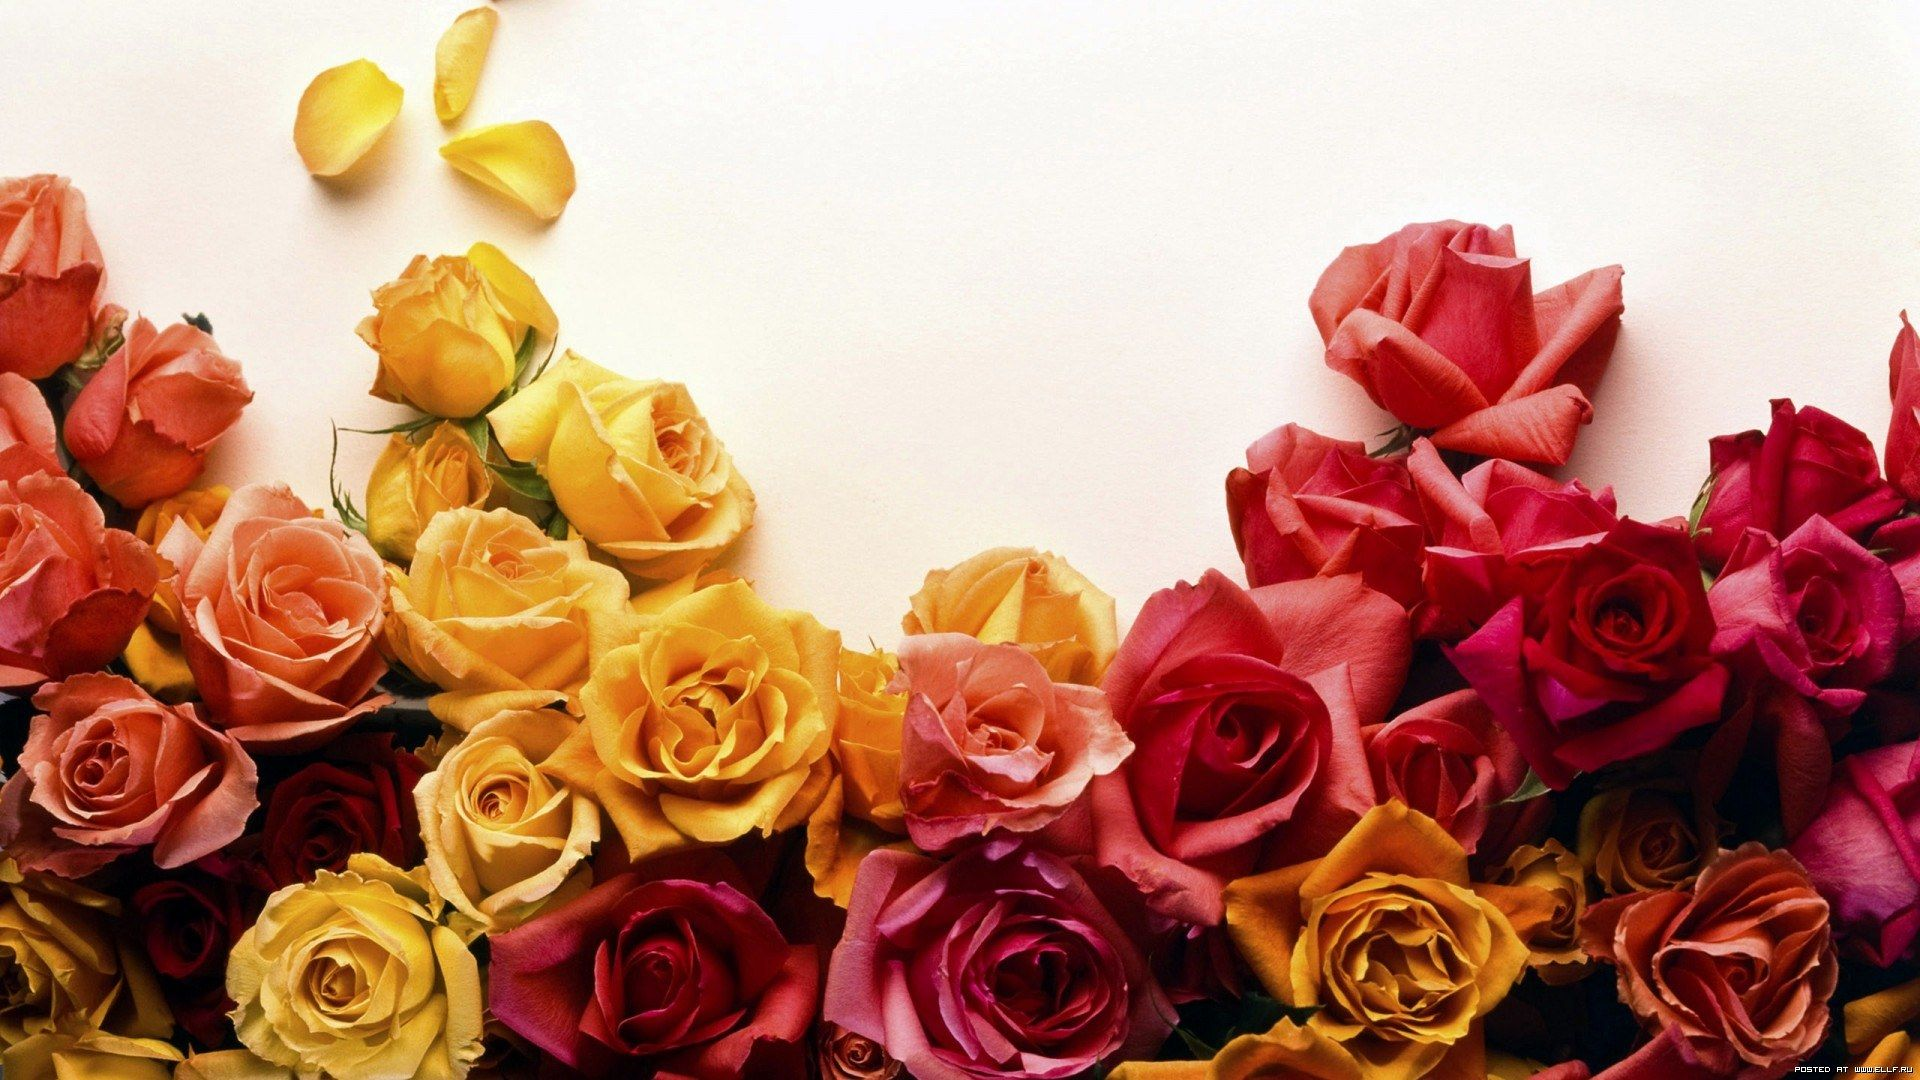 1285147001_colors-of-roses-colors-of-roses-roses-flowers.jpg (1920×1080)